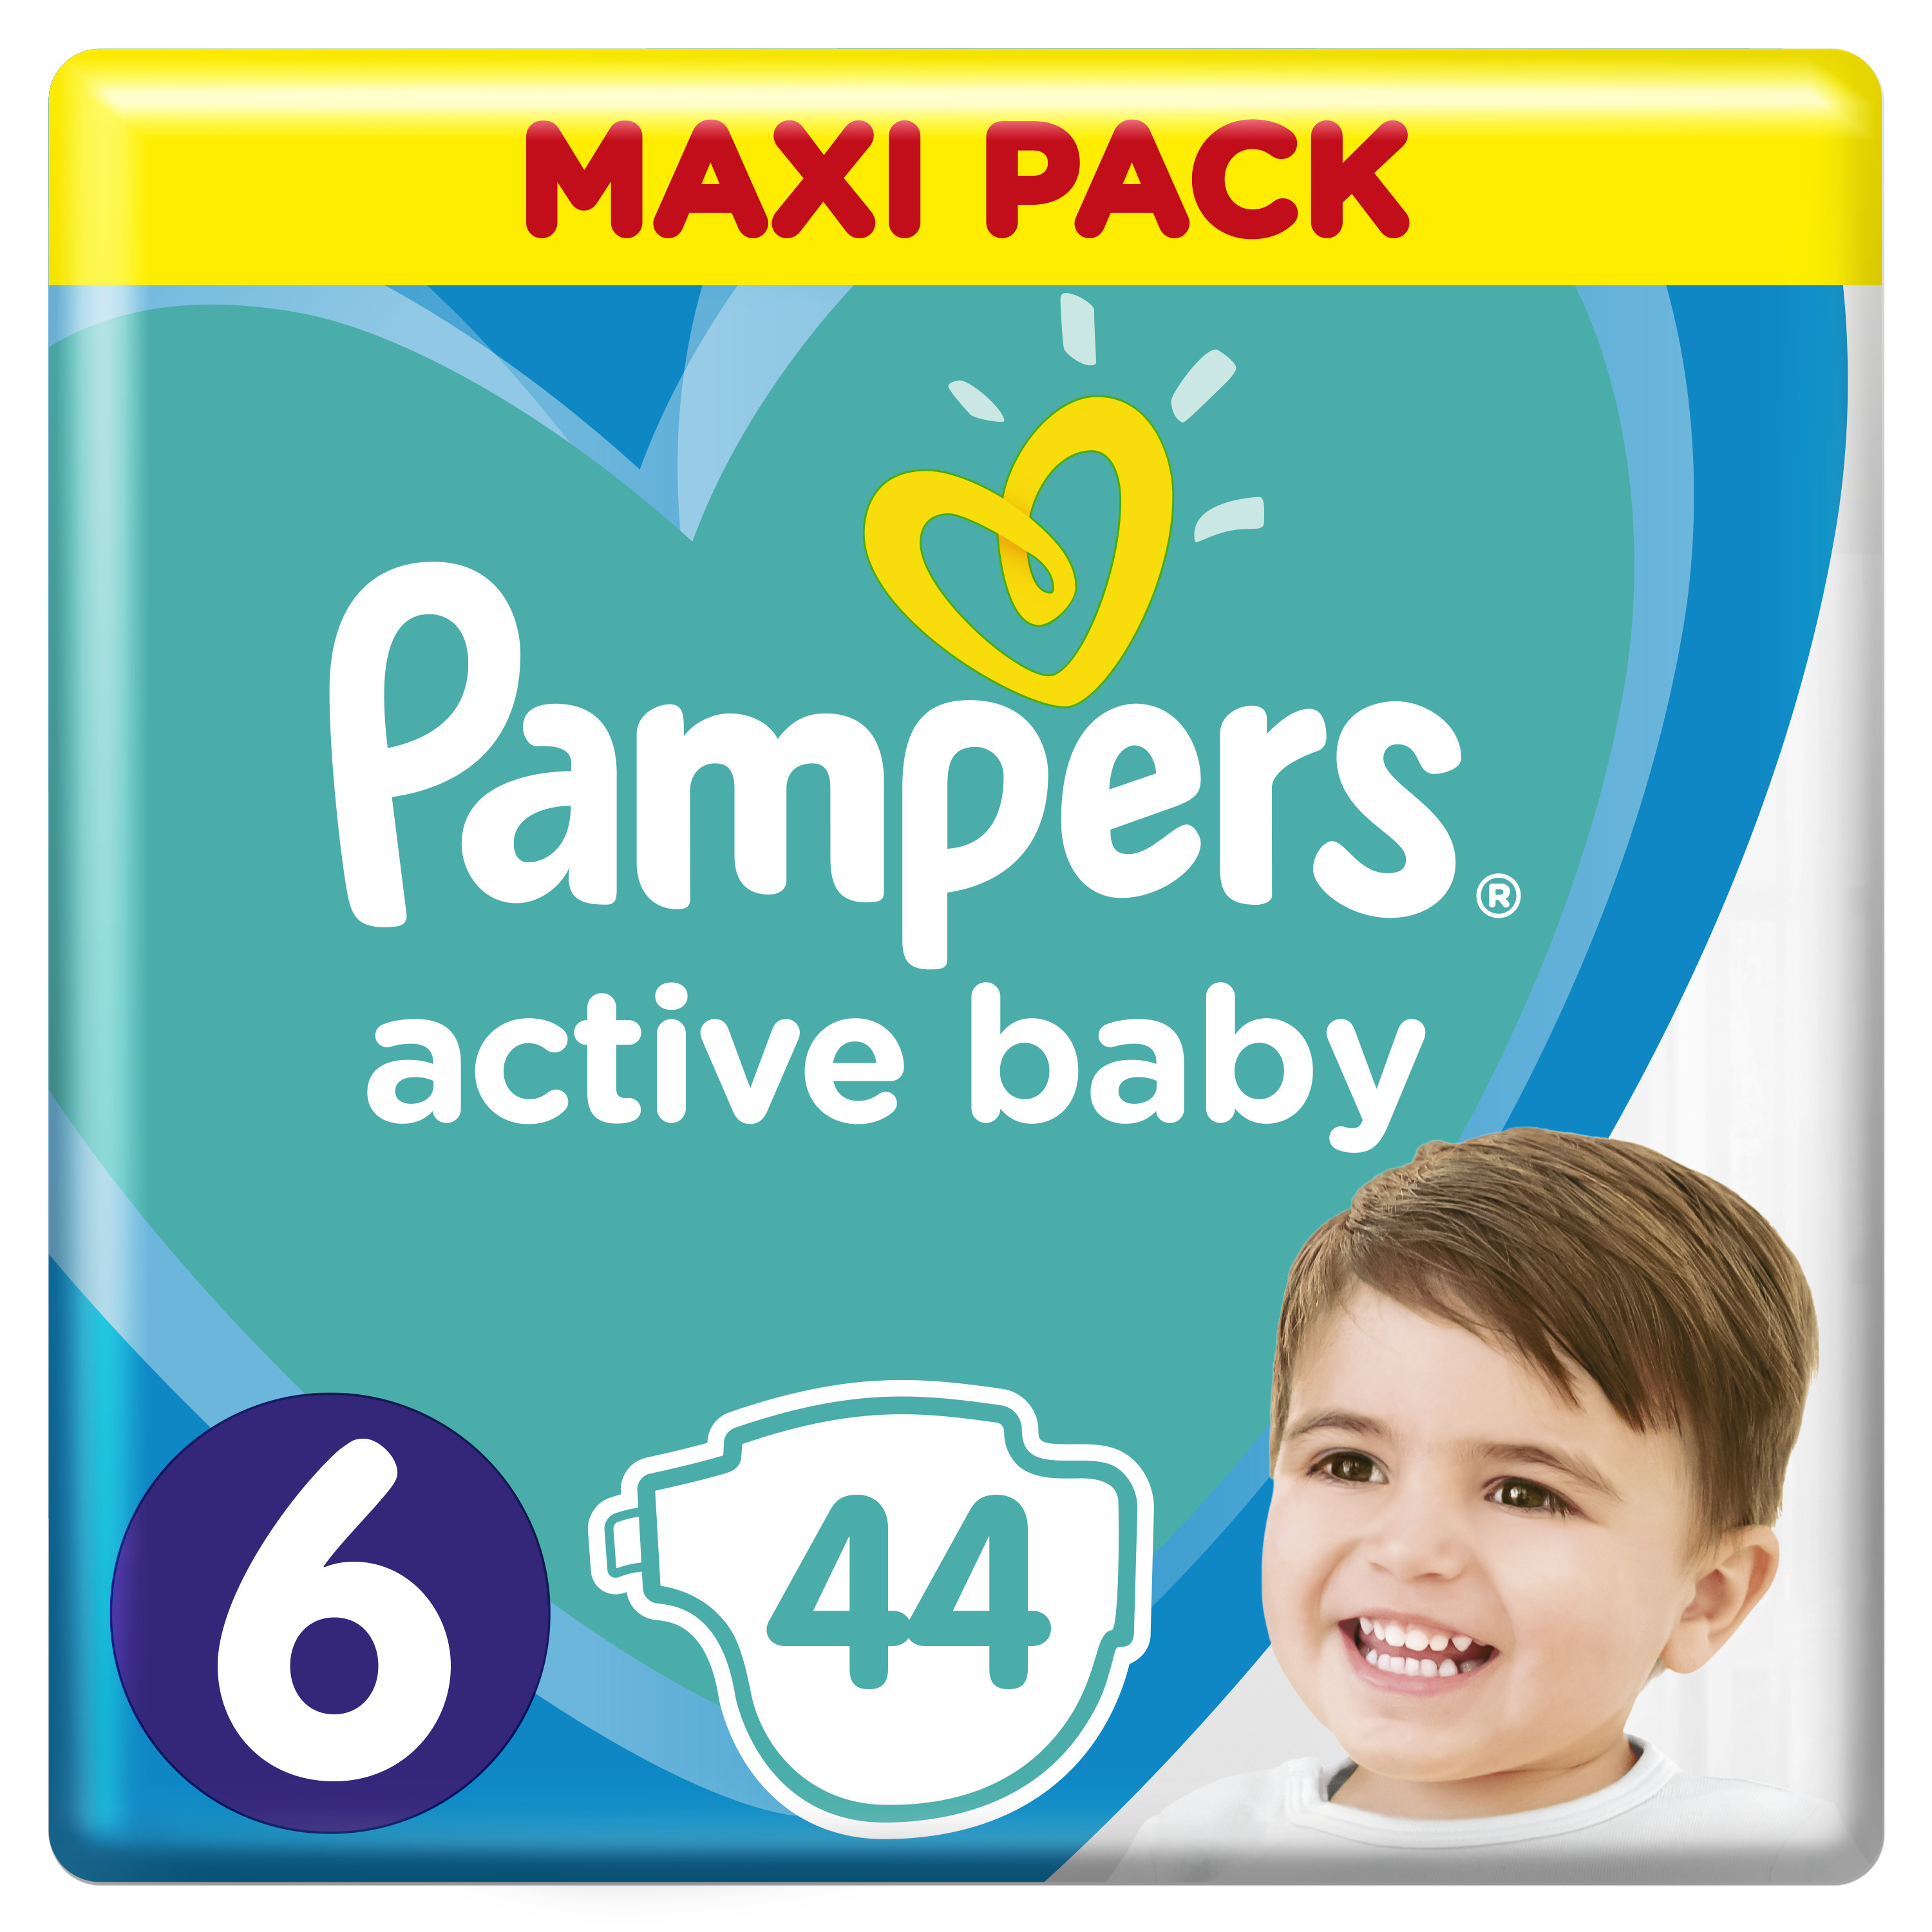 Pampers Πάνες Active Baby Maxi Pack(44τεμ) Νο6 (13-18kg)